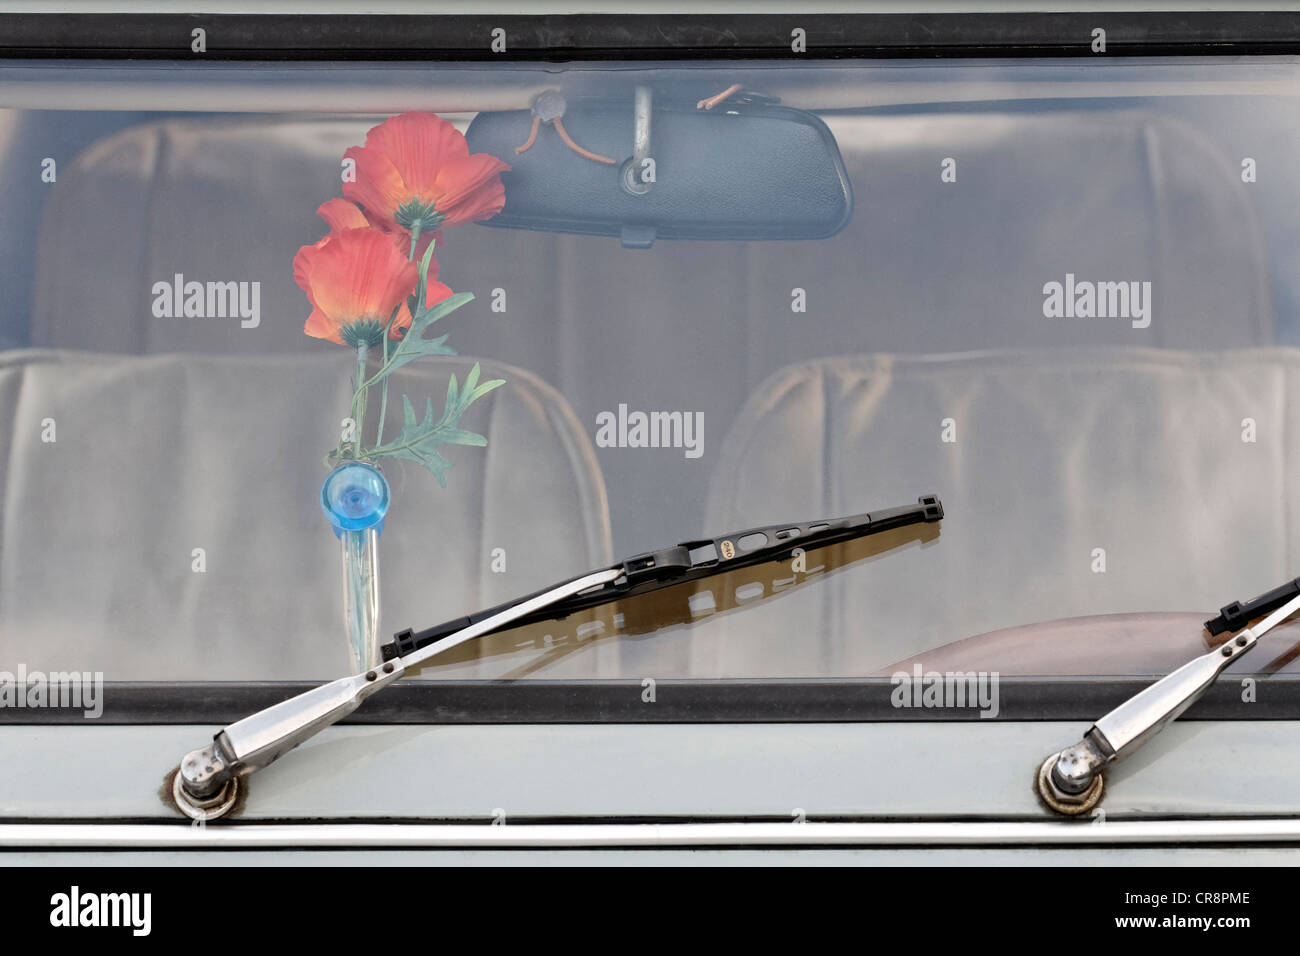 Kitschy vase of plastic flowers behind the windshield of an old Citroen 2CV, Germany, Europe - Stock Image